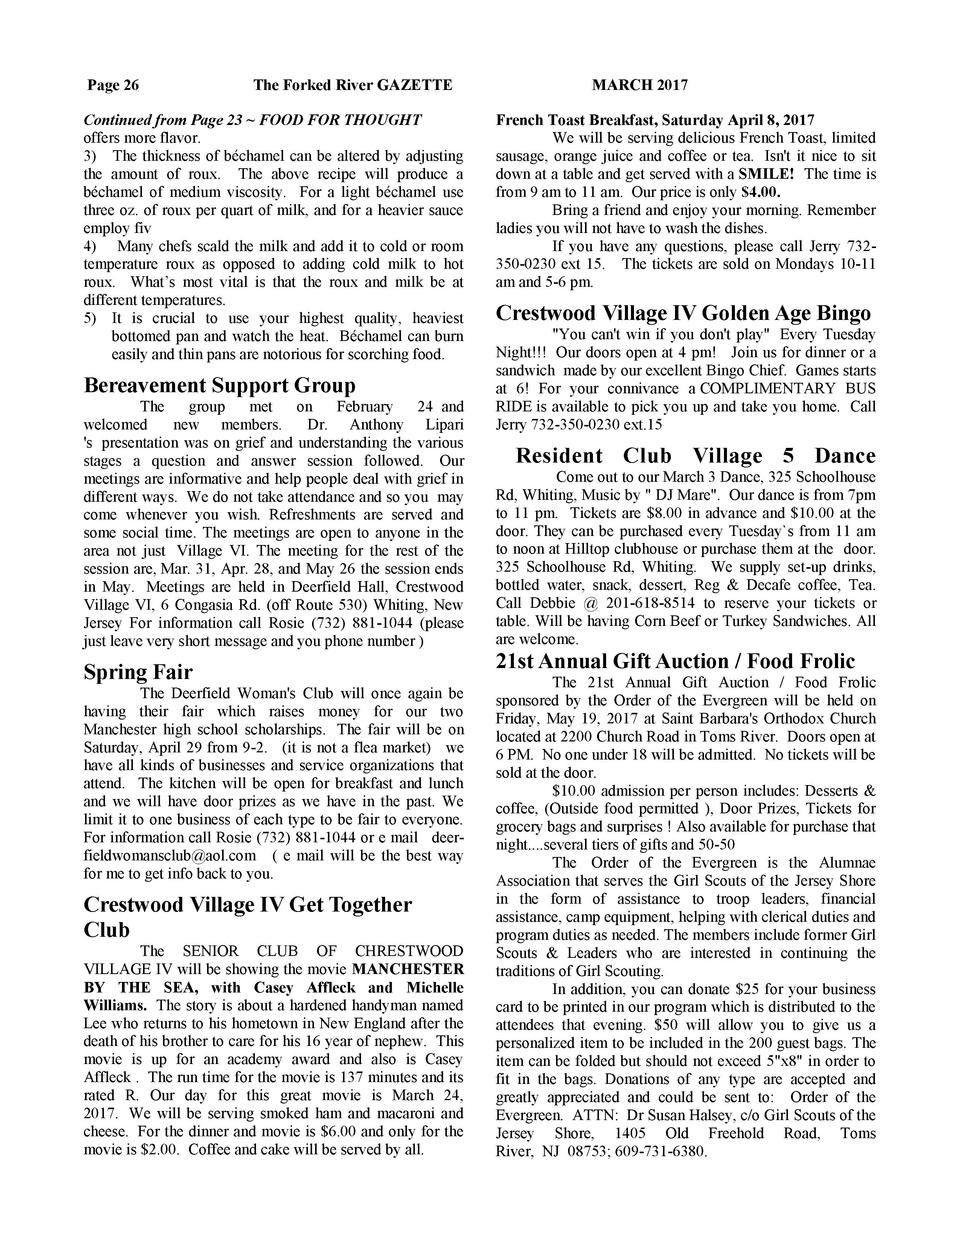 Page 26  The Forked River GAZETTE  Continued from Page 23   FOOD FOR THOUGHT offers more flavor. 3  The thickness of b  ch...